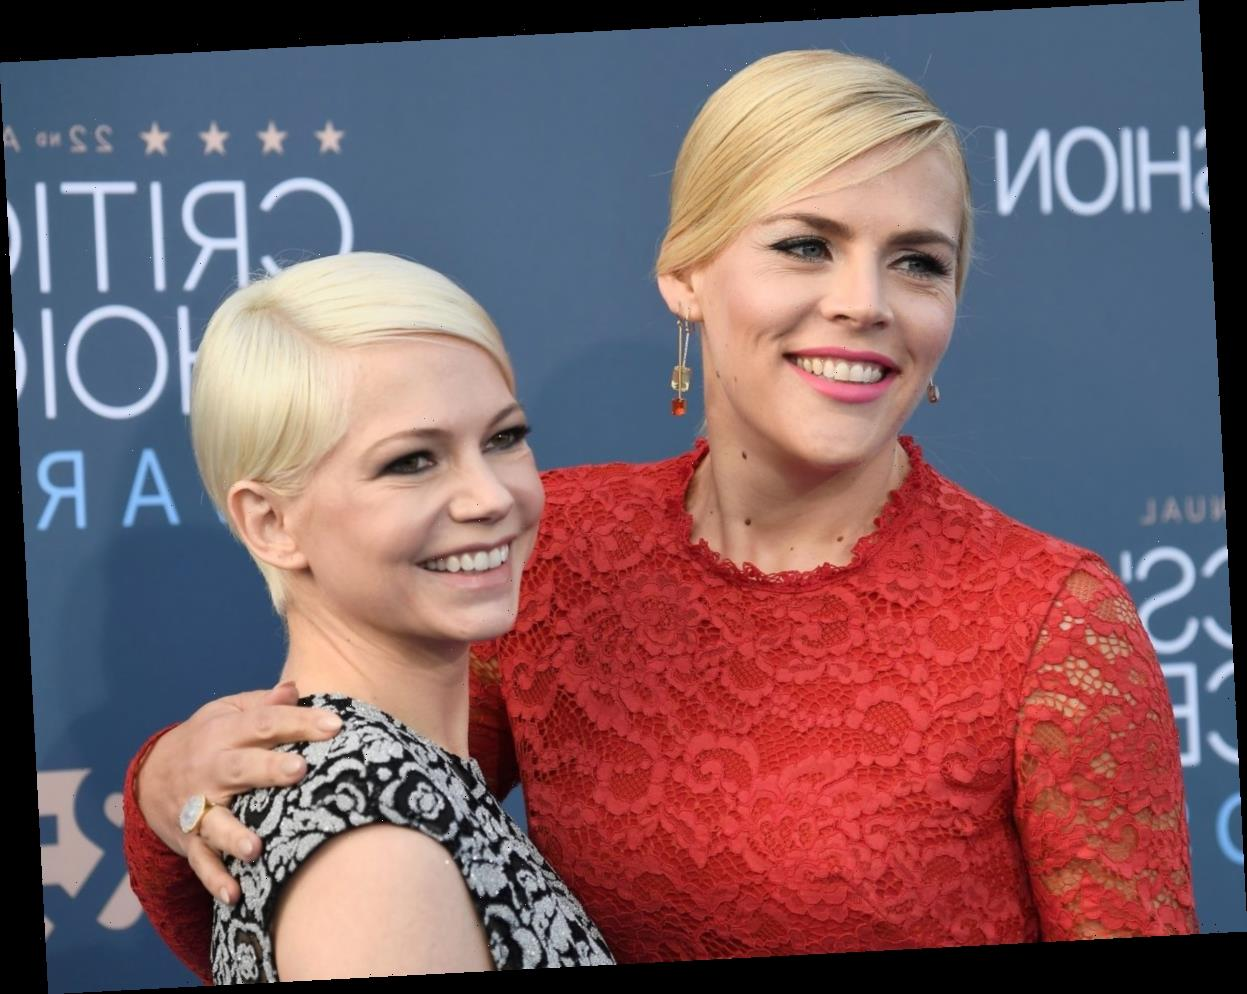 Busy Philipps Celebrates 20-Year Friendship With Michelle Williams: 'There's No One I'd Rather Weather All the Storms With'